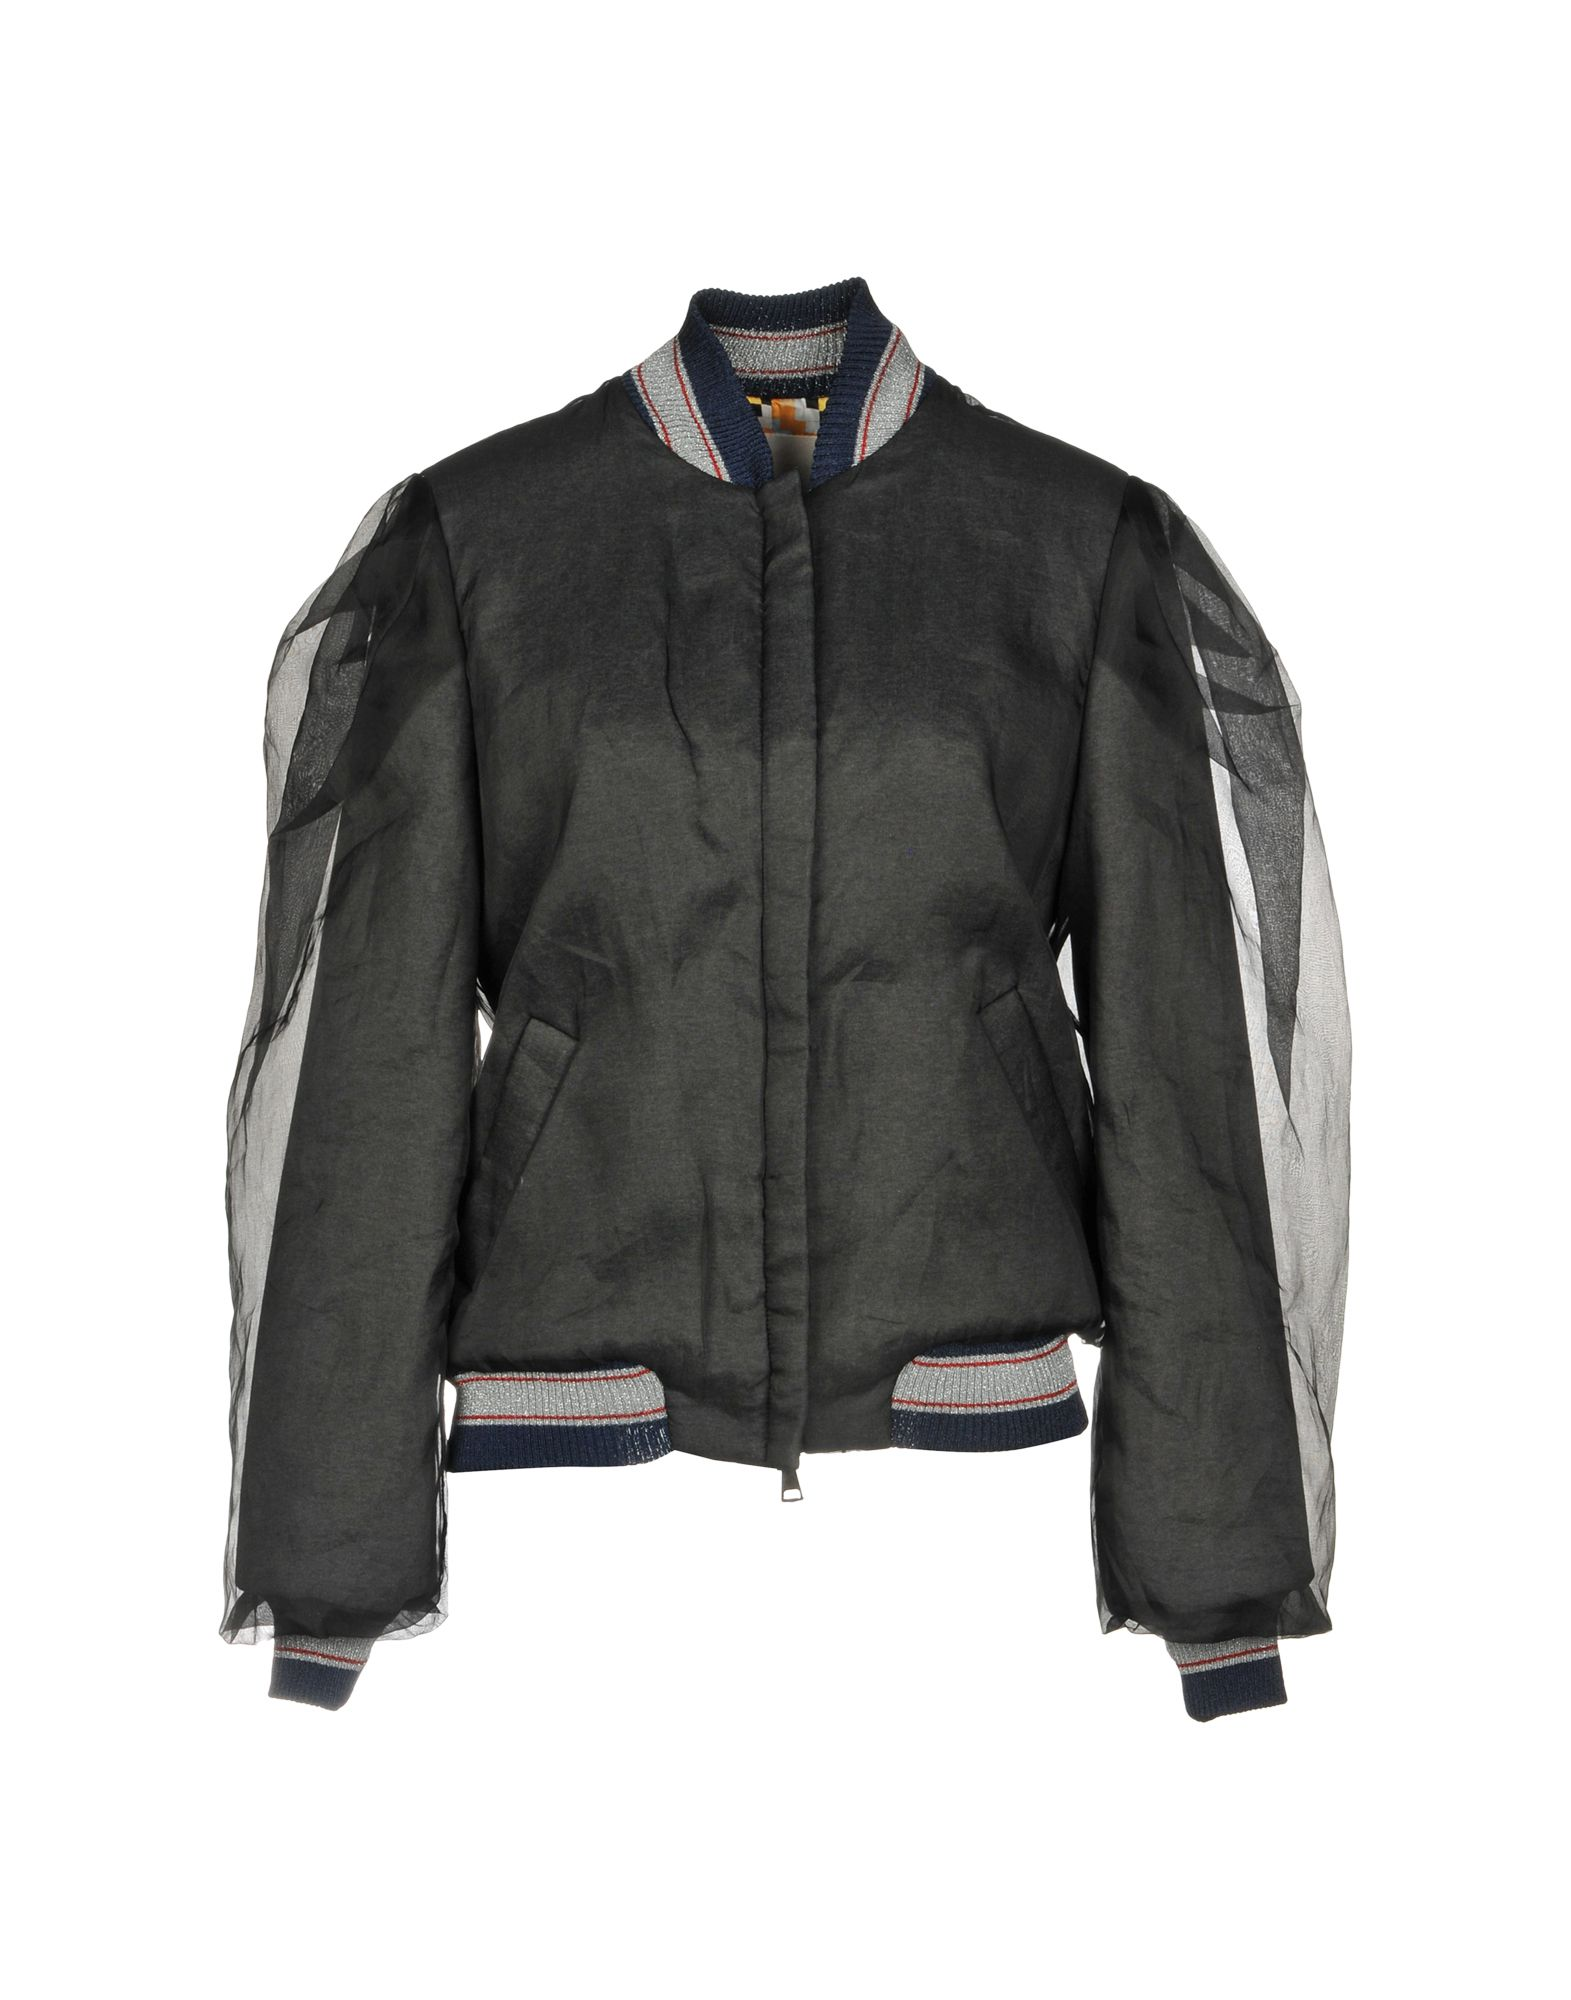 MIAHATAMI Bomber in Black